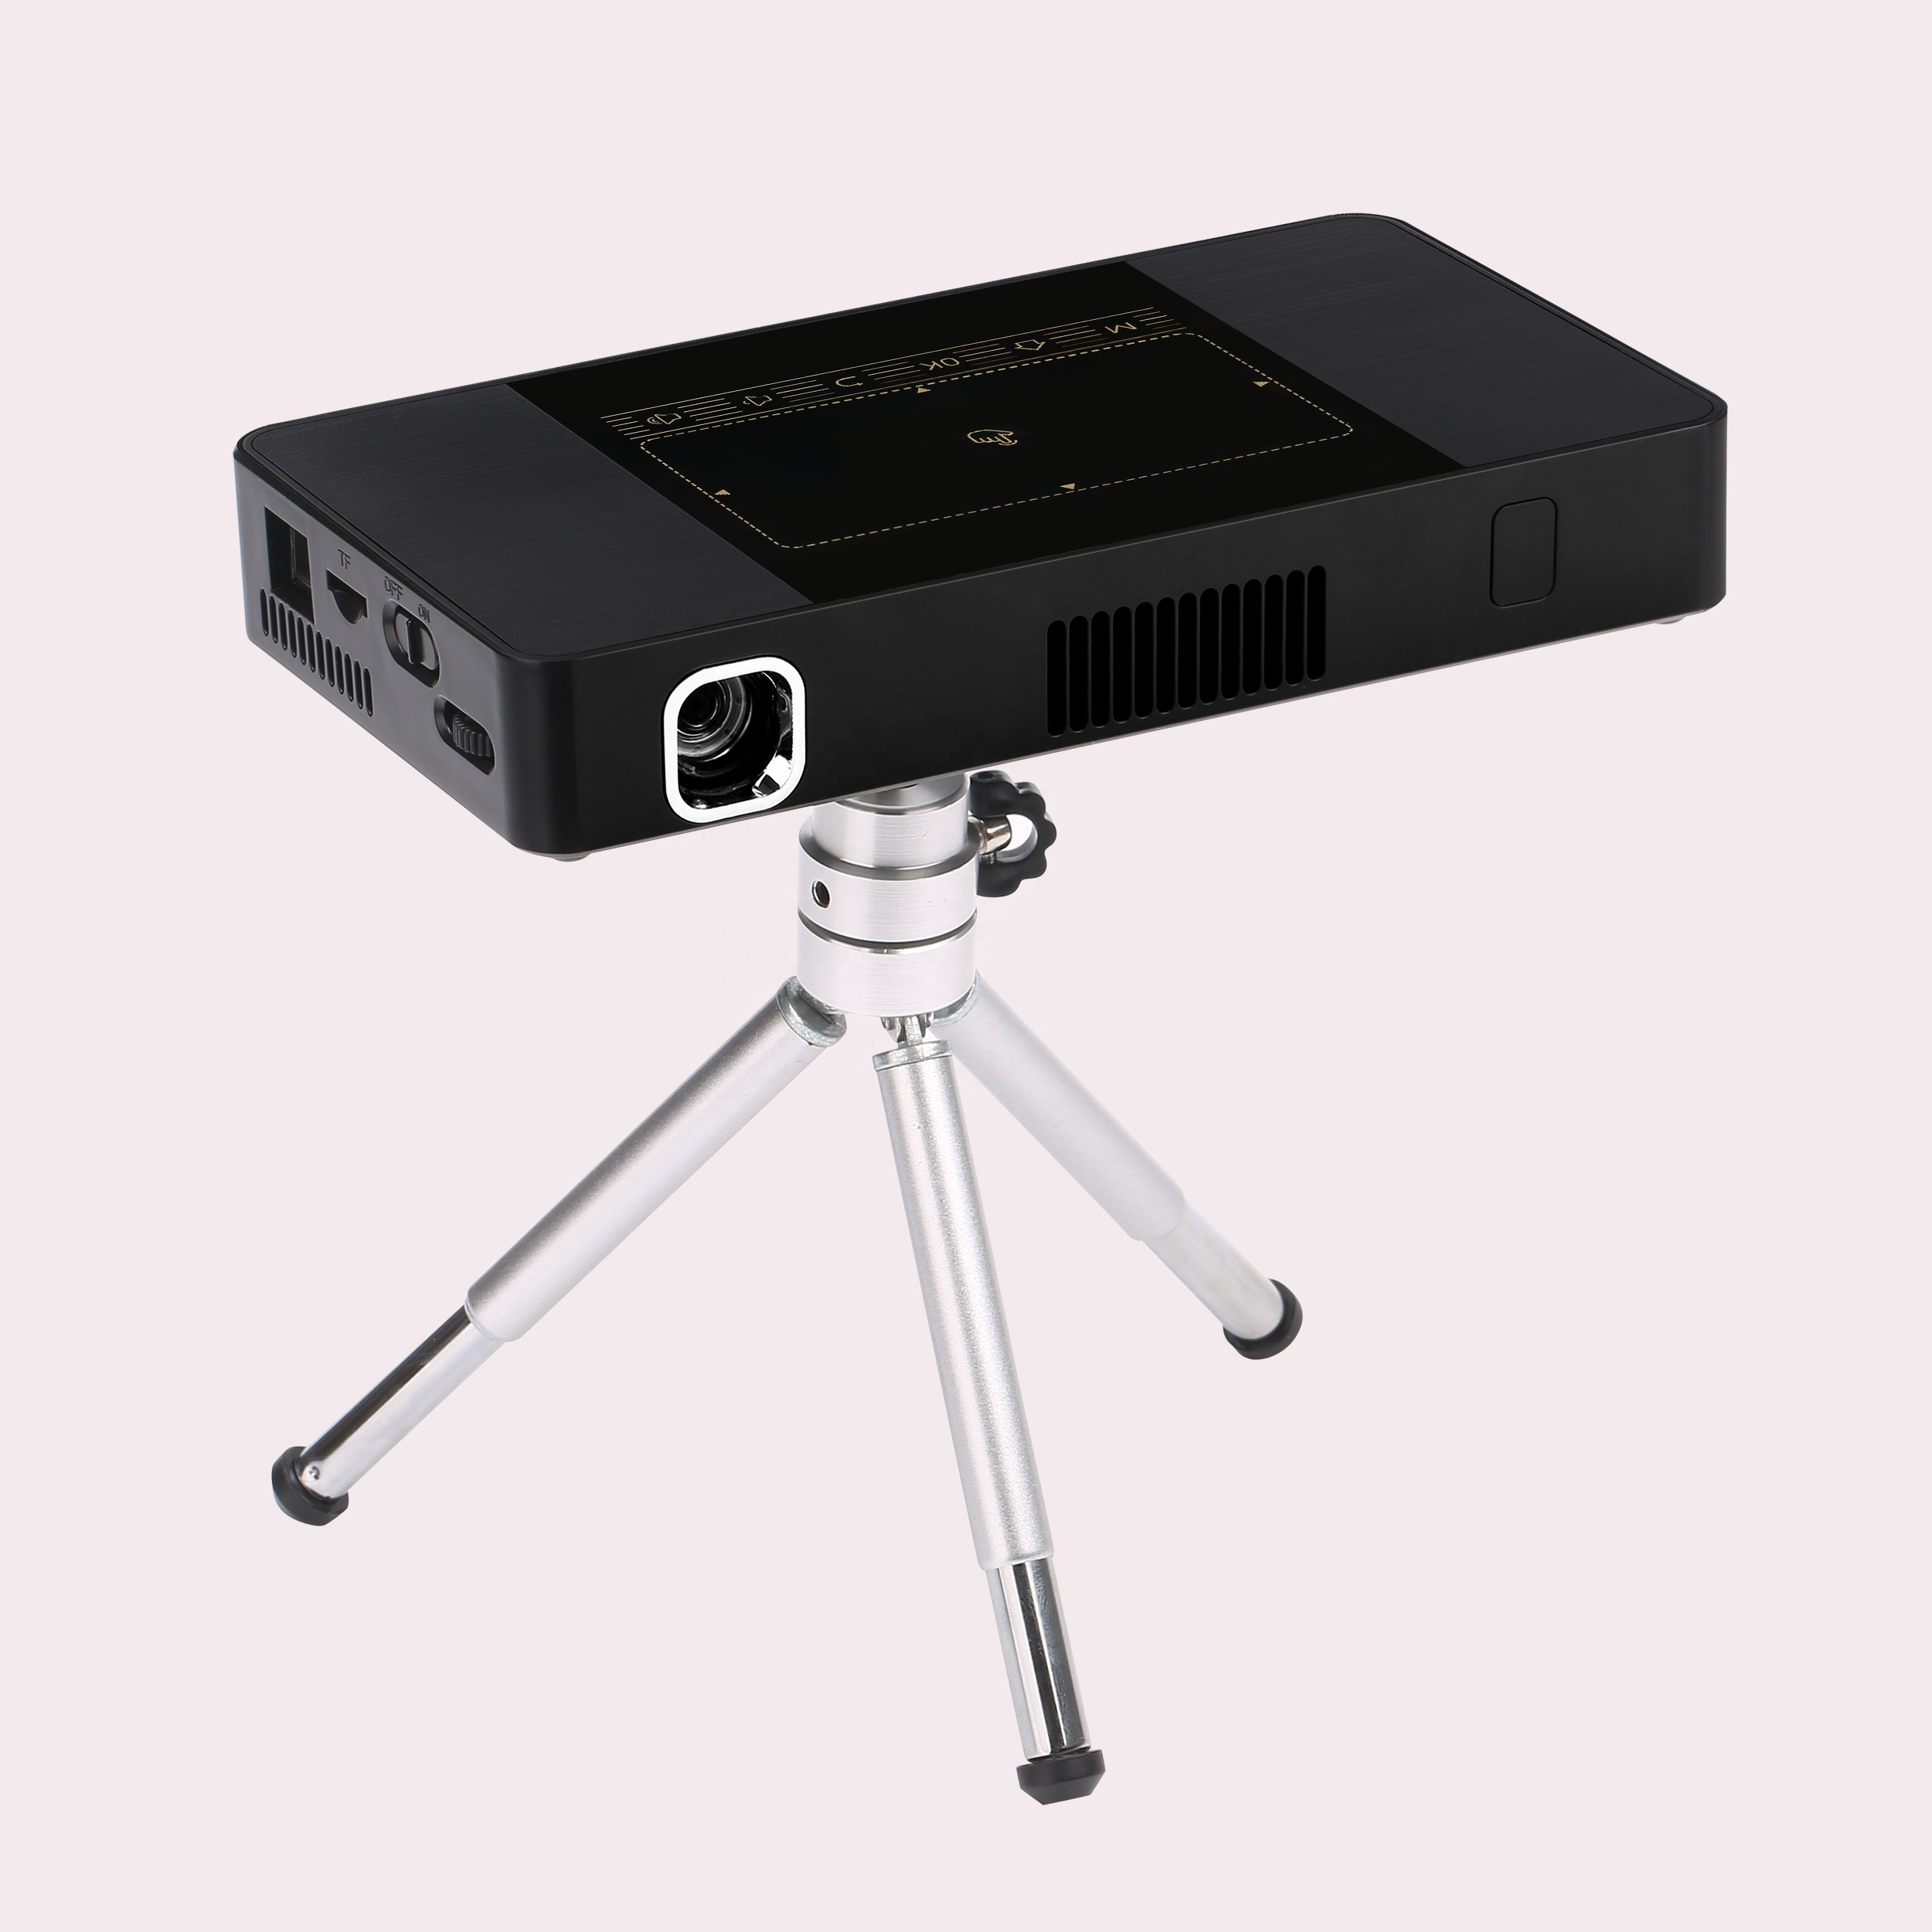 LSP home theater Portable DLP <strong>LED</strong> Mini Pocket projector With 4k docoding and ir&amp;touch Control Projector <strong>C10</strong>